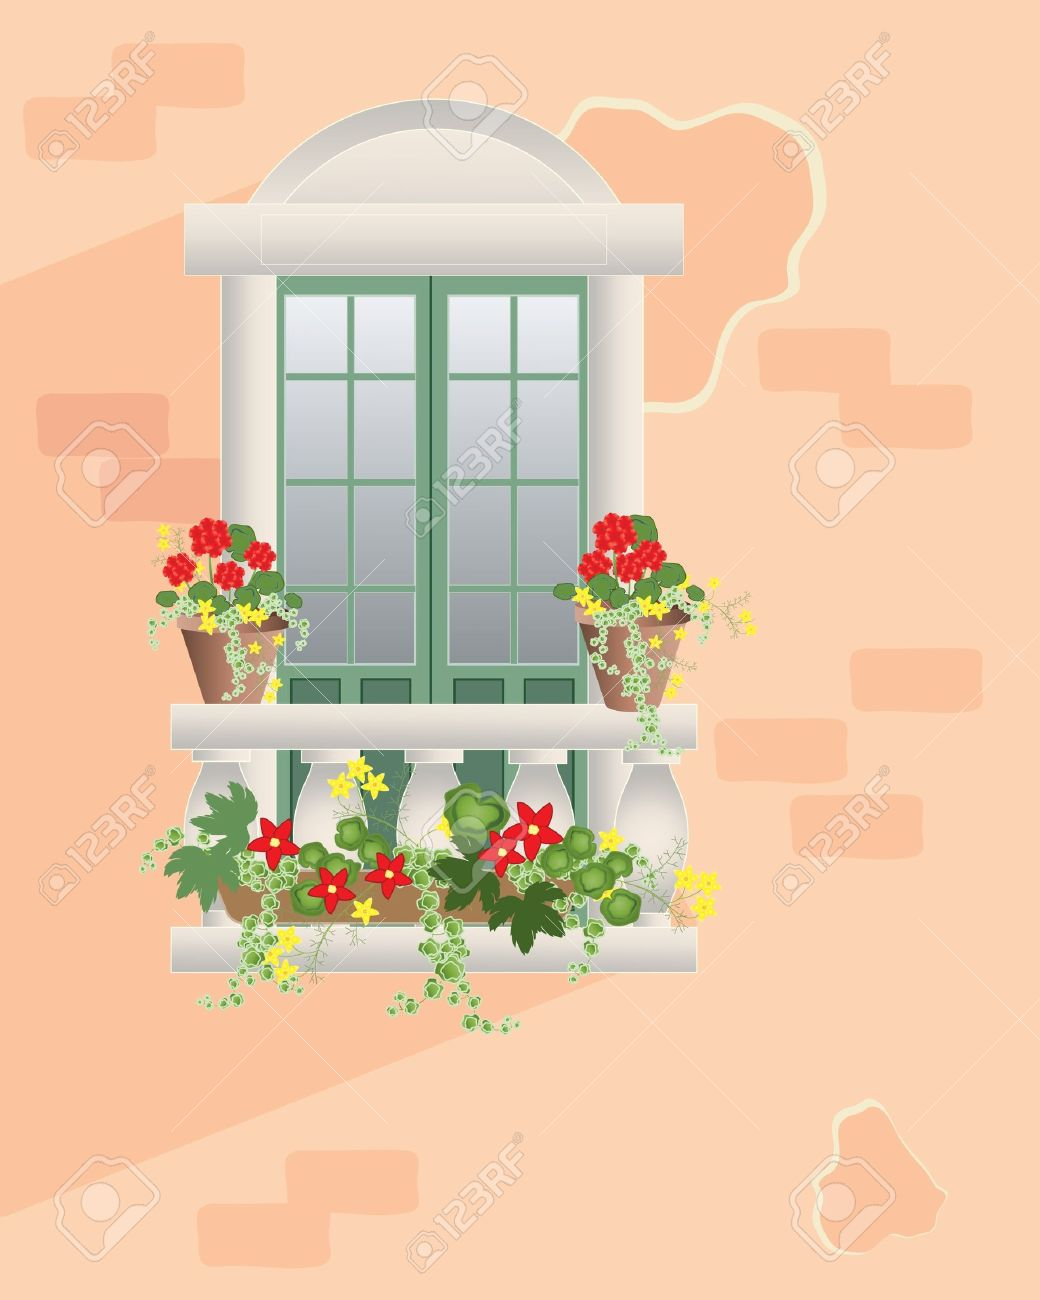 Balcony plant clipart clipground for Balcony cartoon